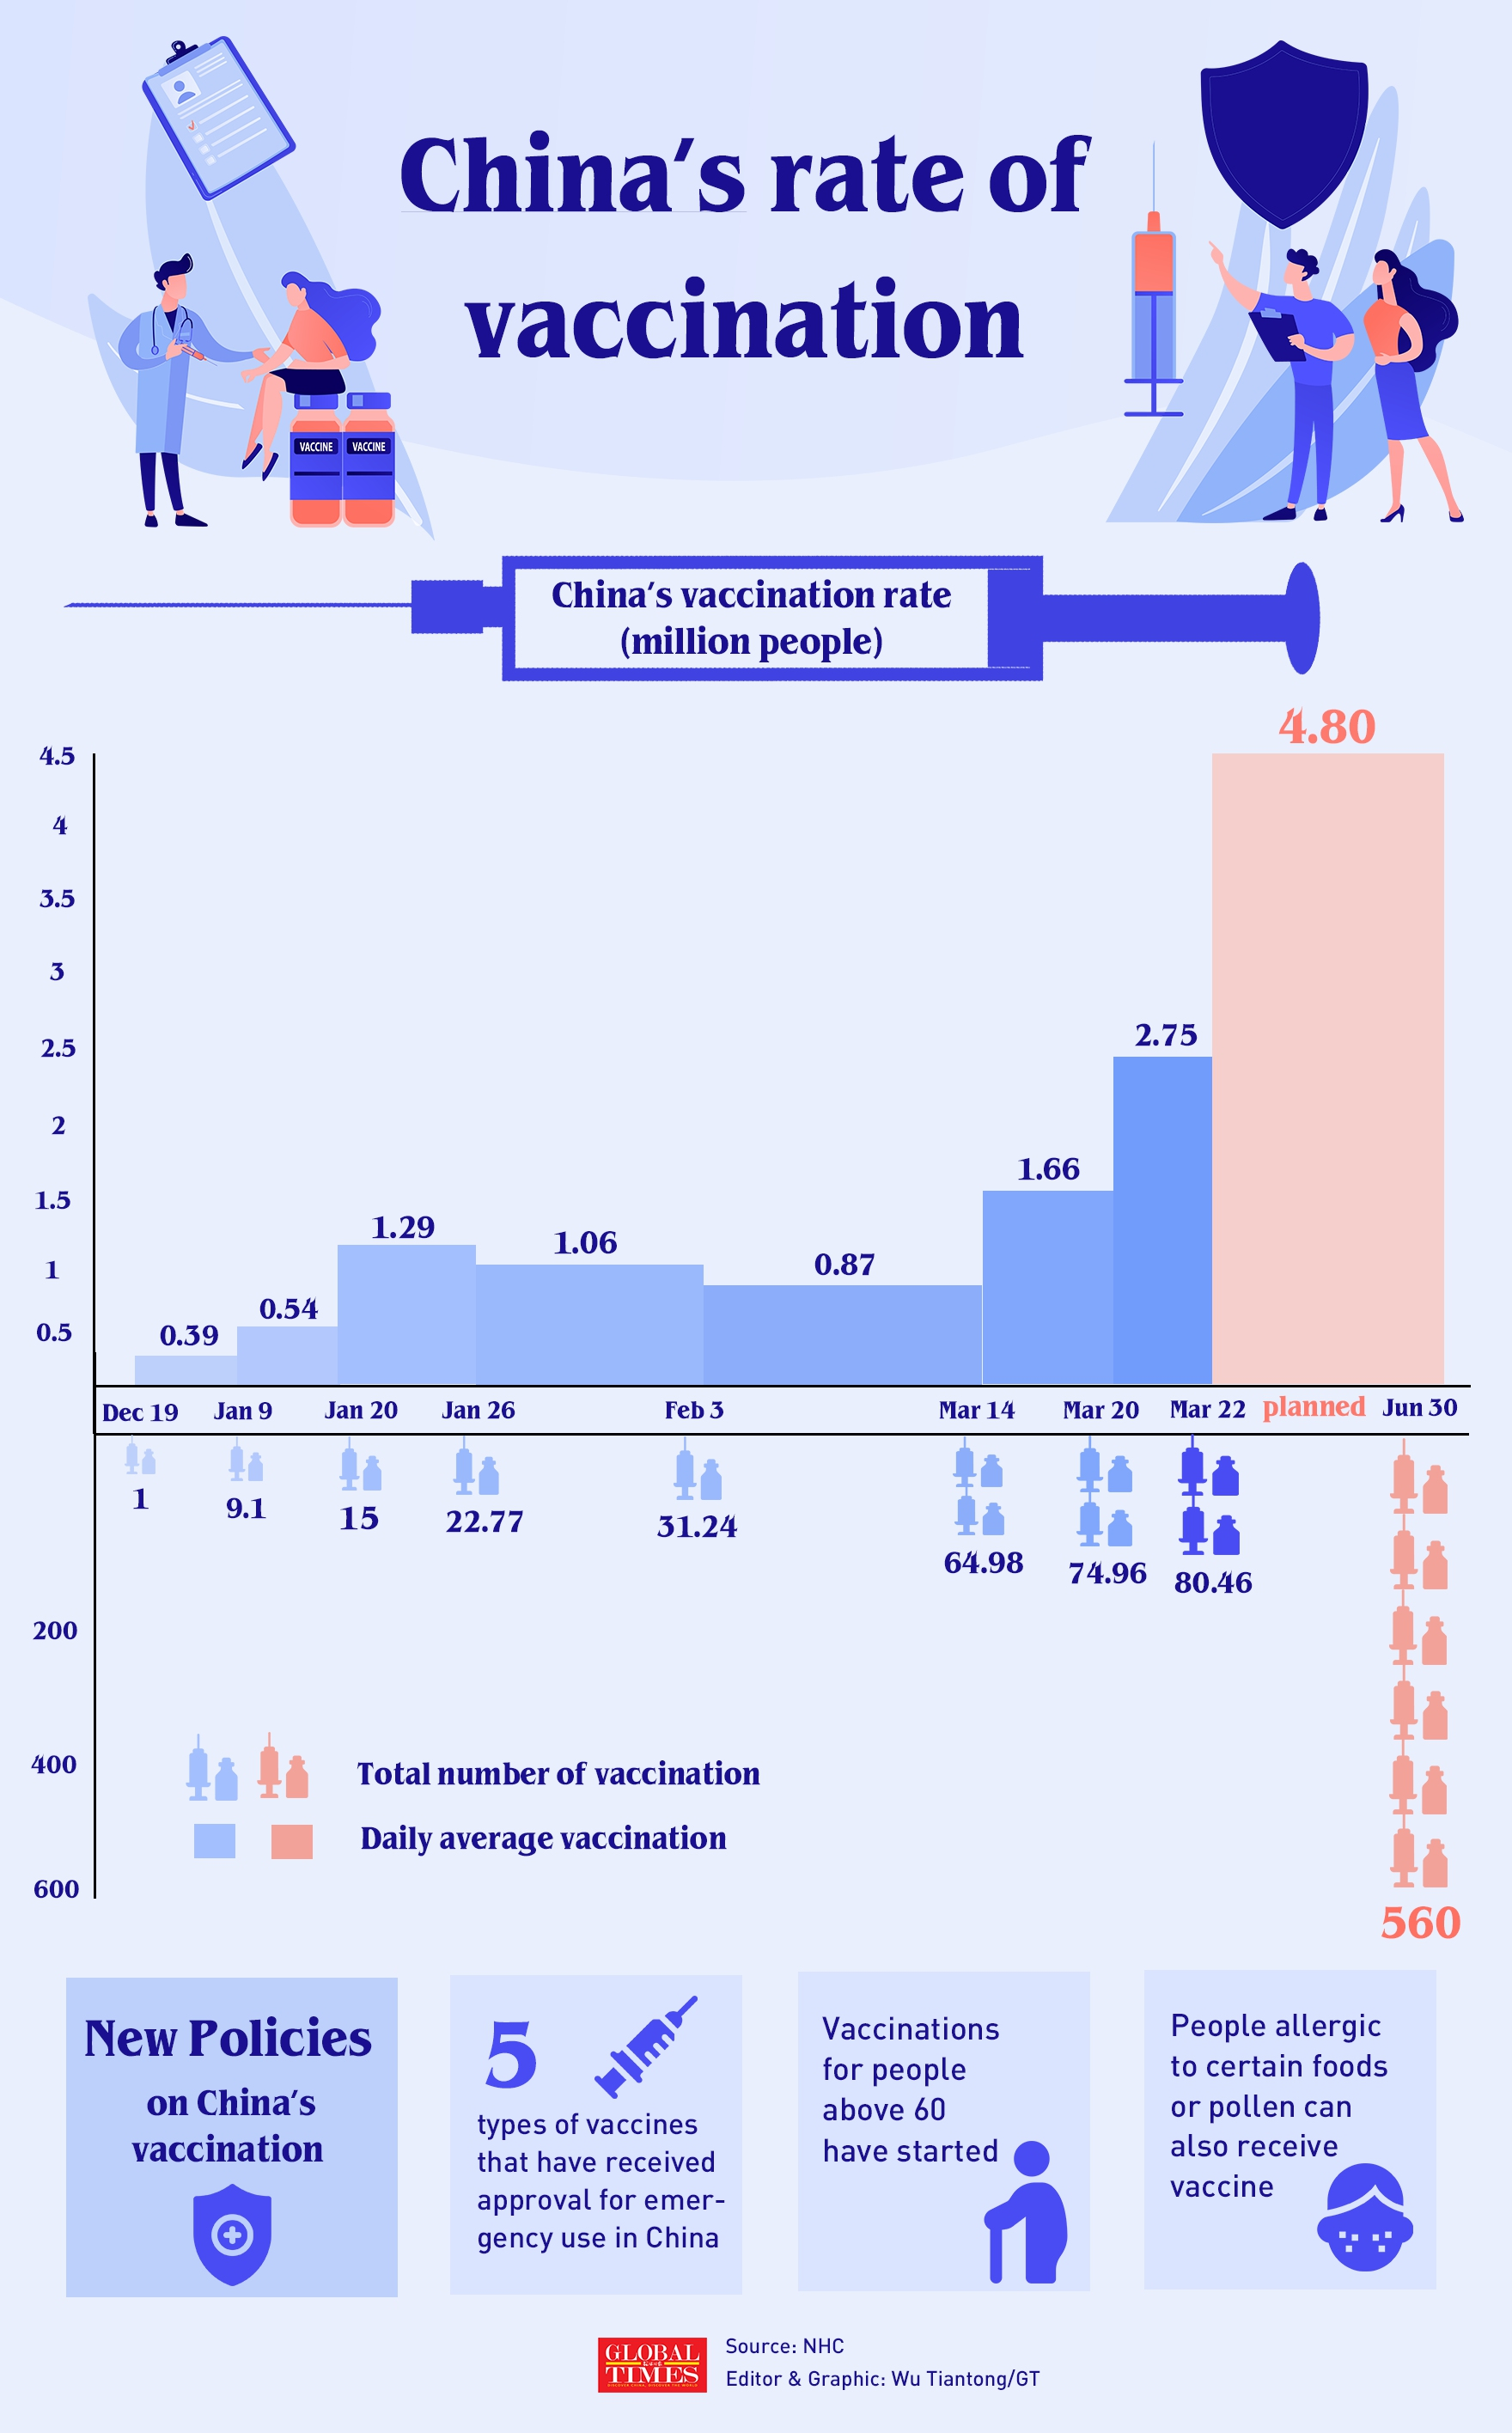 80.46 million people had received #COVID19 vaccination as of Mar 22. After the first vaccine was approved for emergency use in July 2020, China's vaccination rate has accelerated. Check this graphic for more details: Infographic: Wu Tiantong/GT